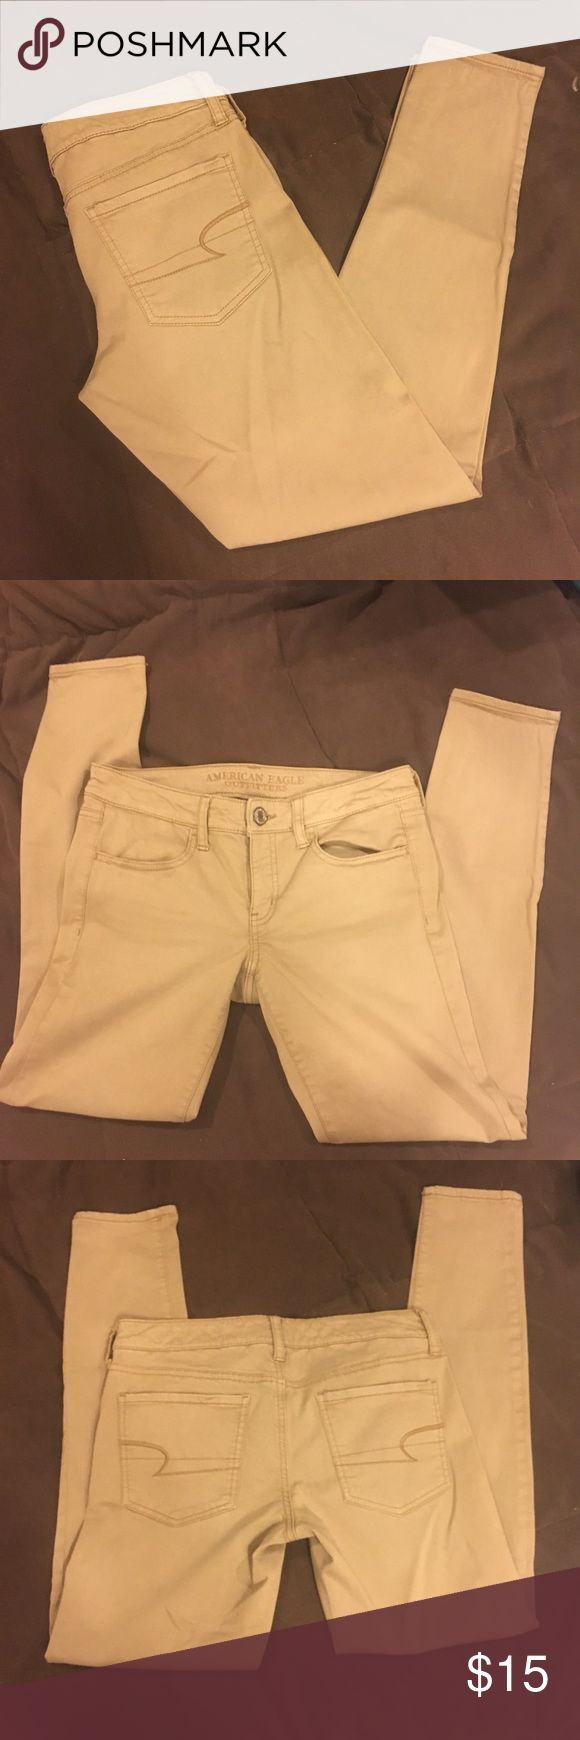 AEO khaki jeggings American Eagle tan skinny pants. Great condition.  Size 6R. American Eagle Outfitters Pants Skinny